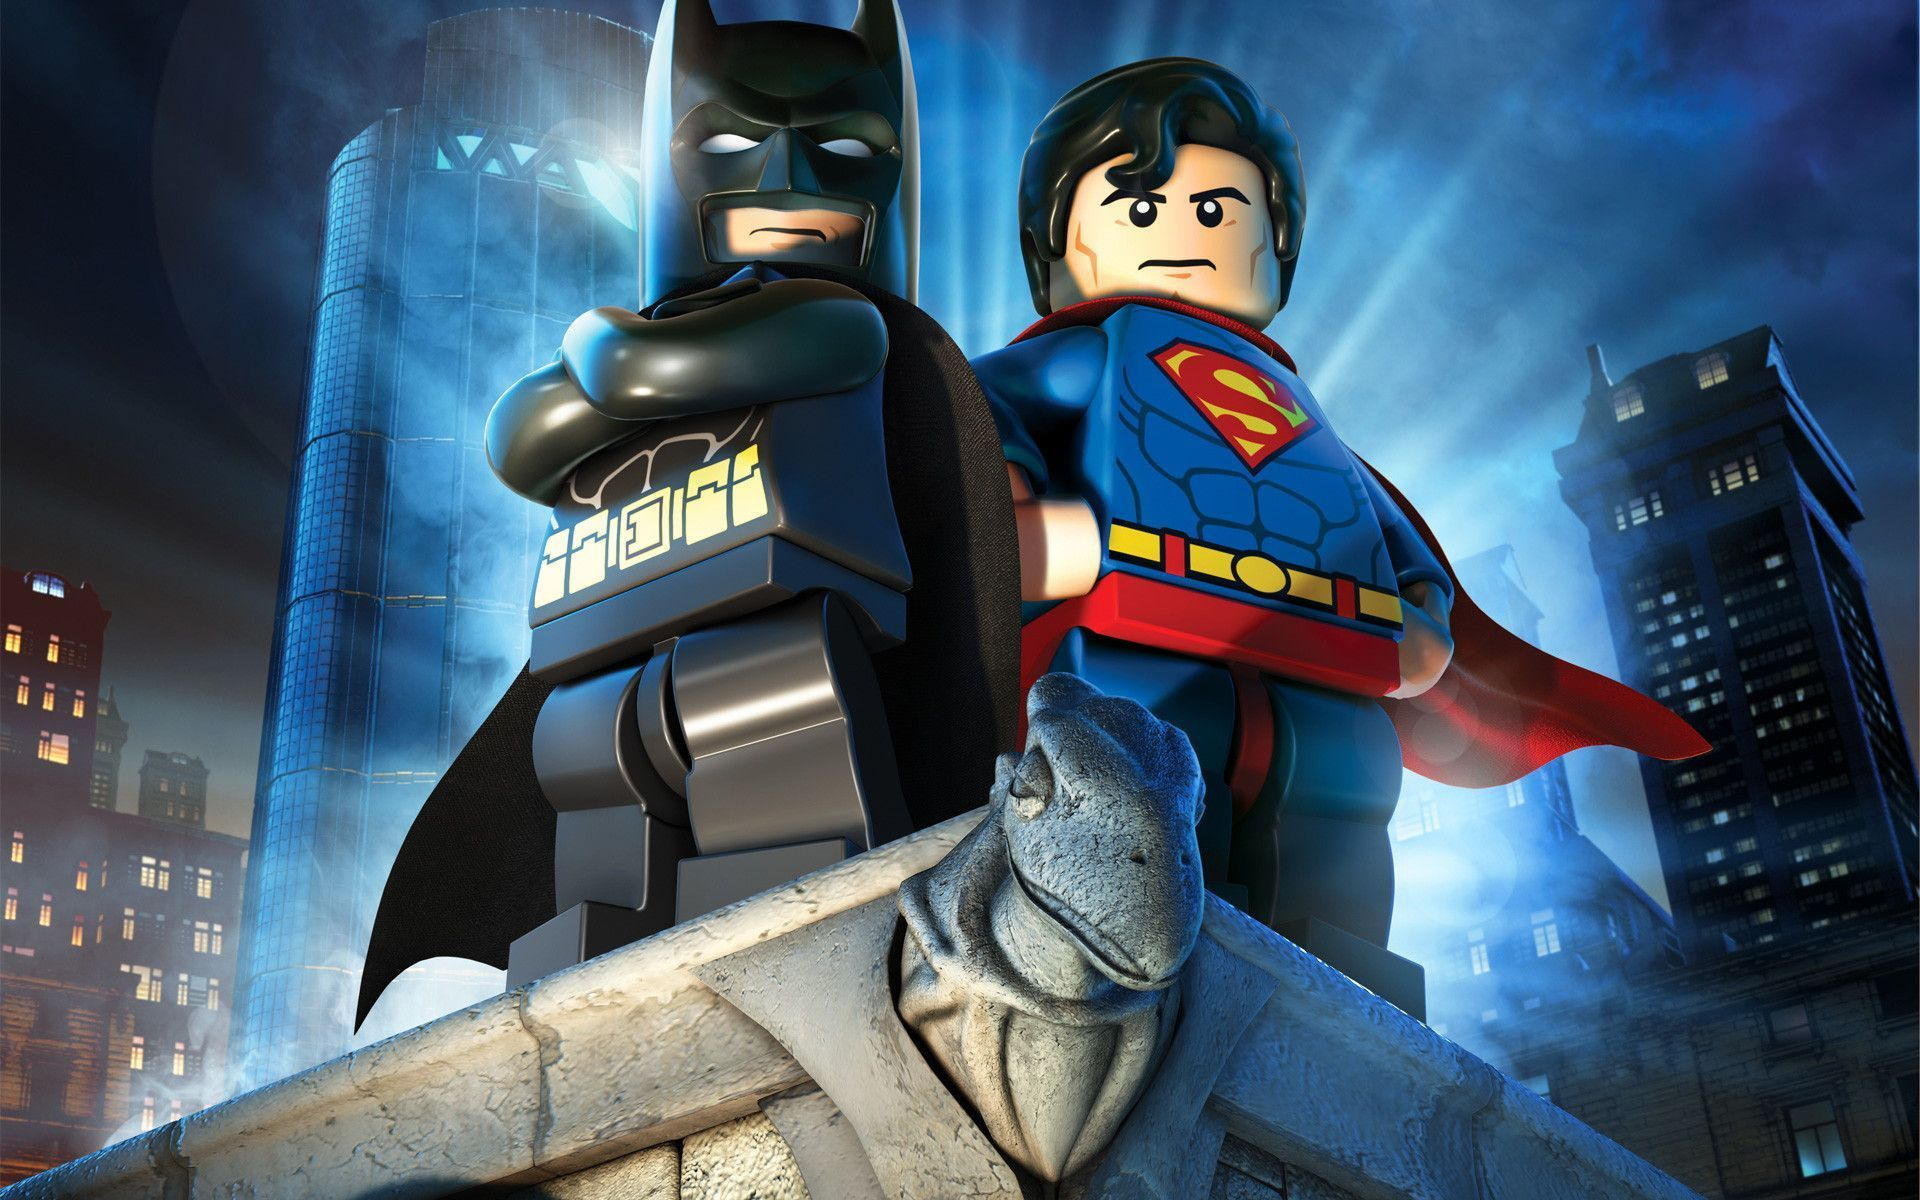 1920x1200 LEGO Batman 2: DC Super Heroes HD Wallpapers and Background Images ...